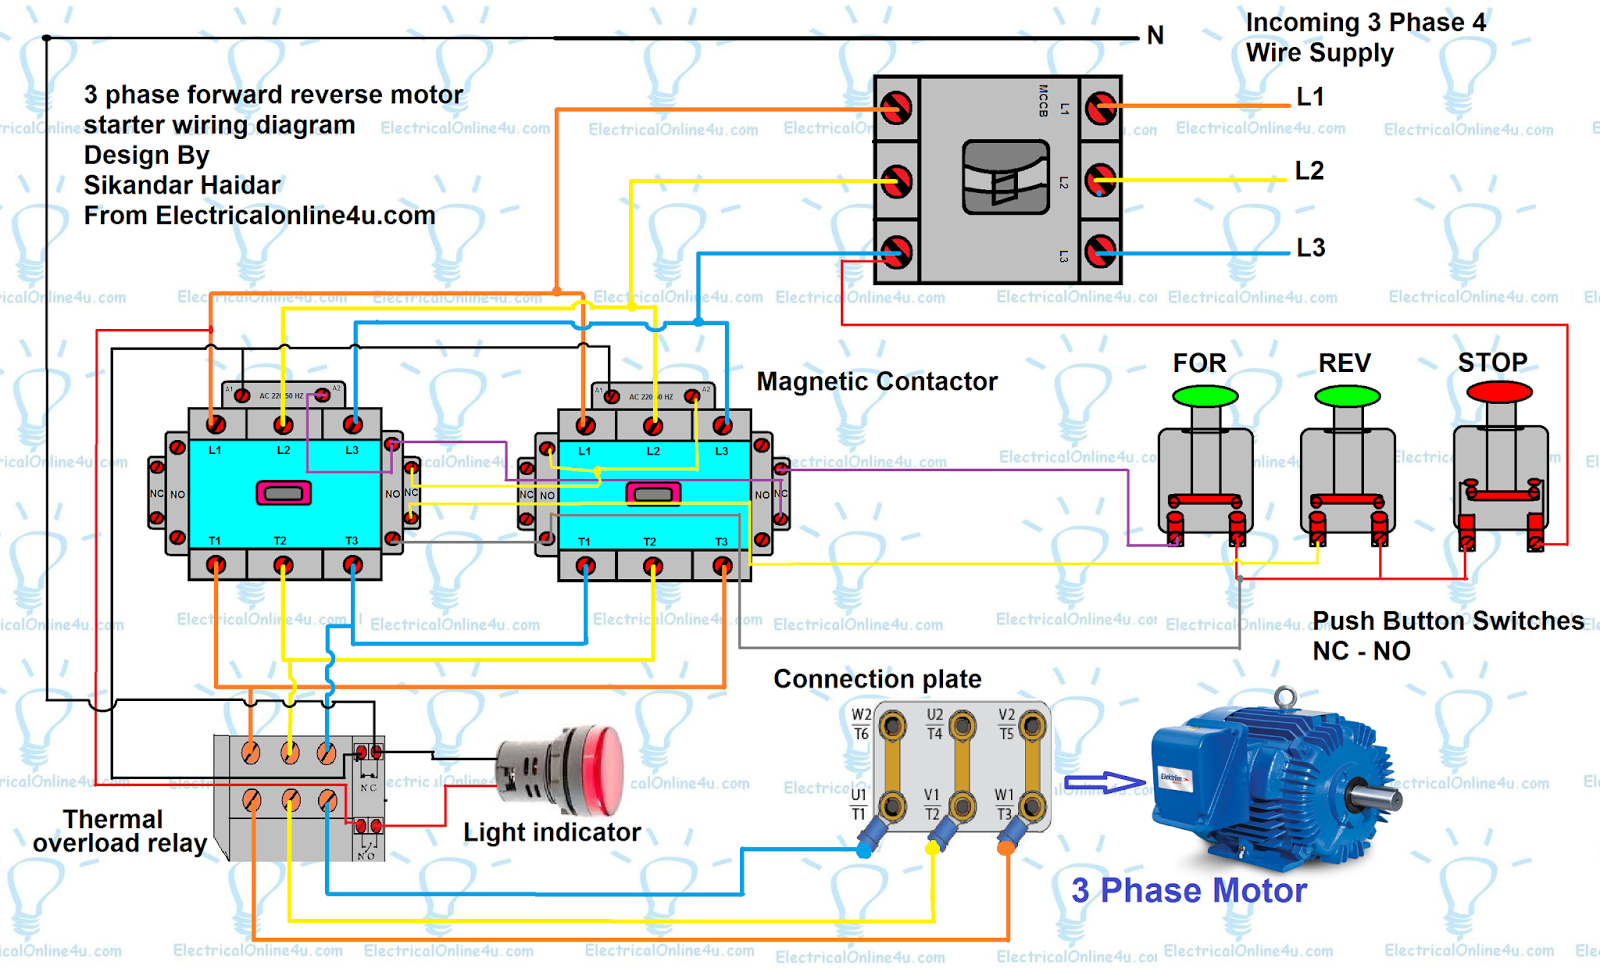 Forward Reverse Motor Control Diagram For 3 Phase Electrical Starter Wiring